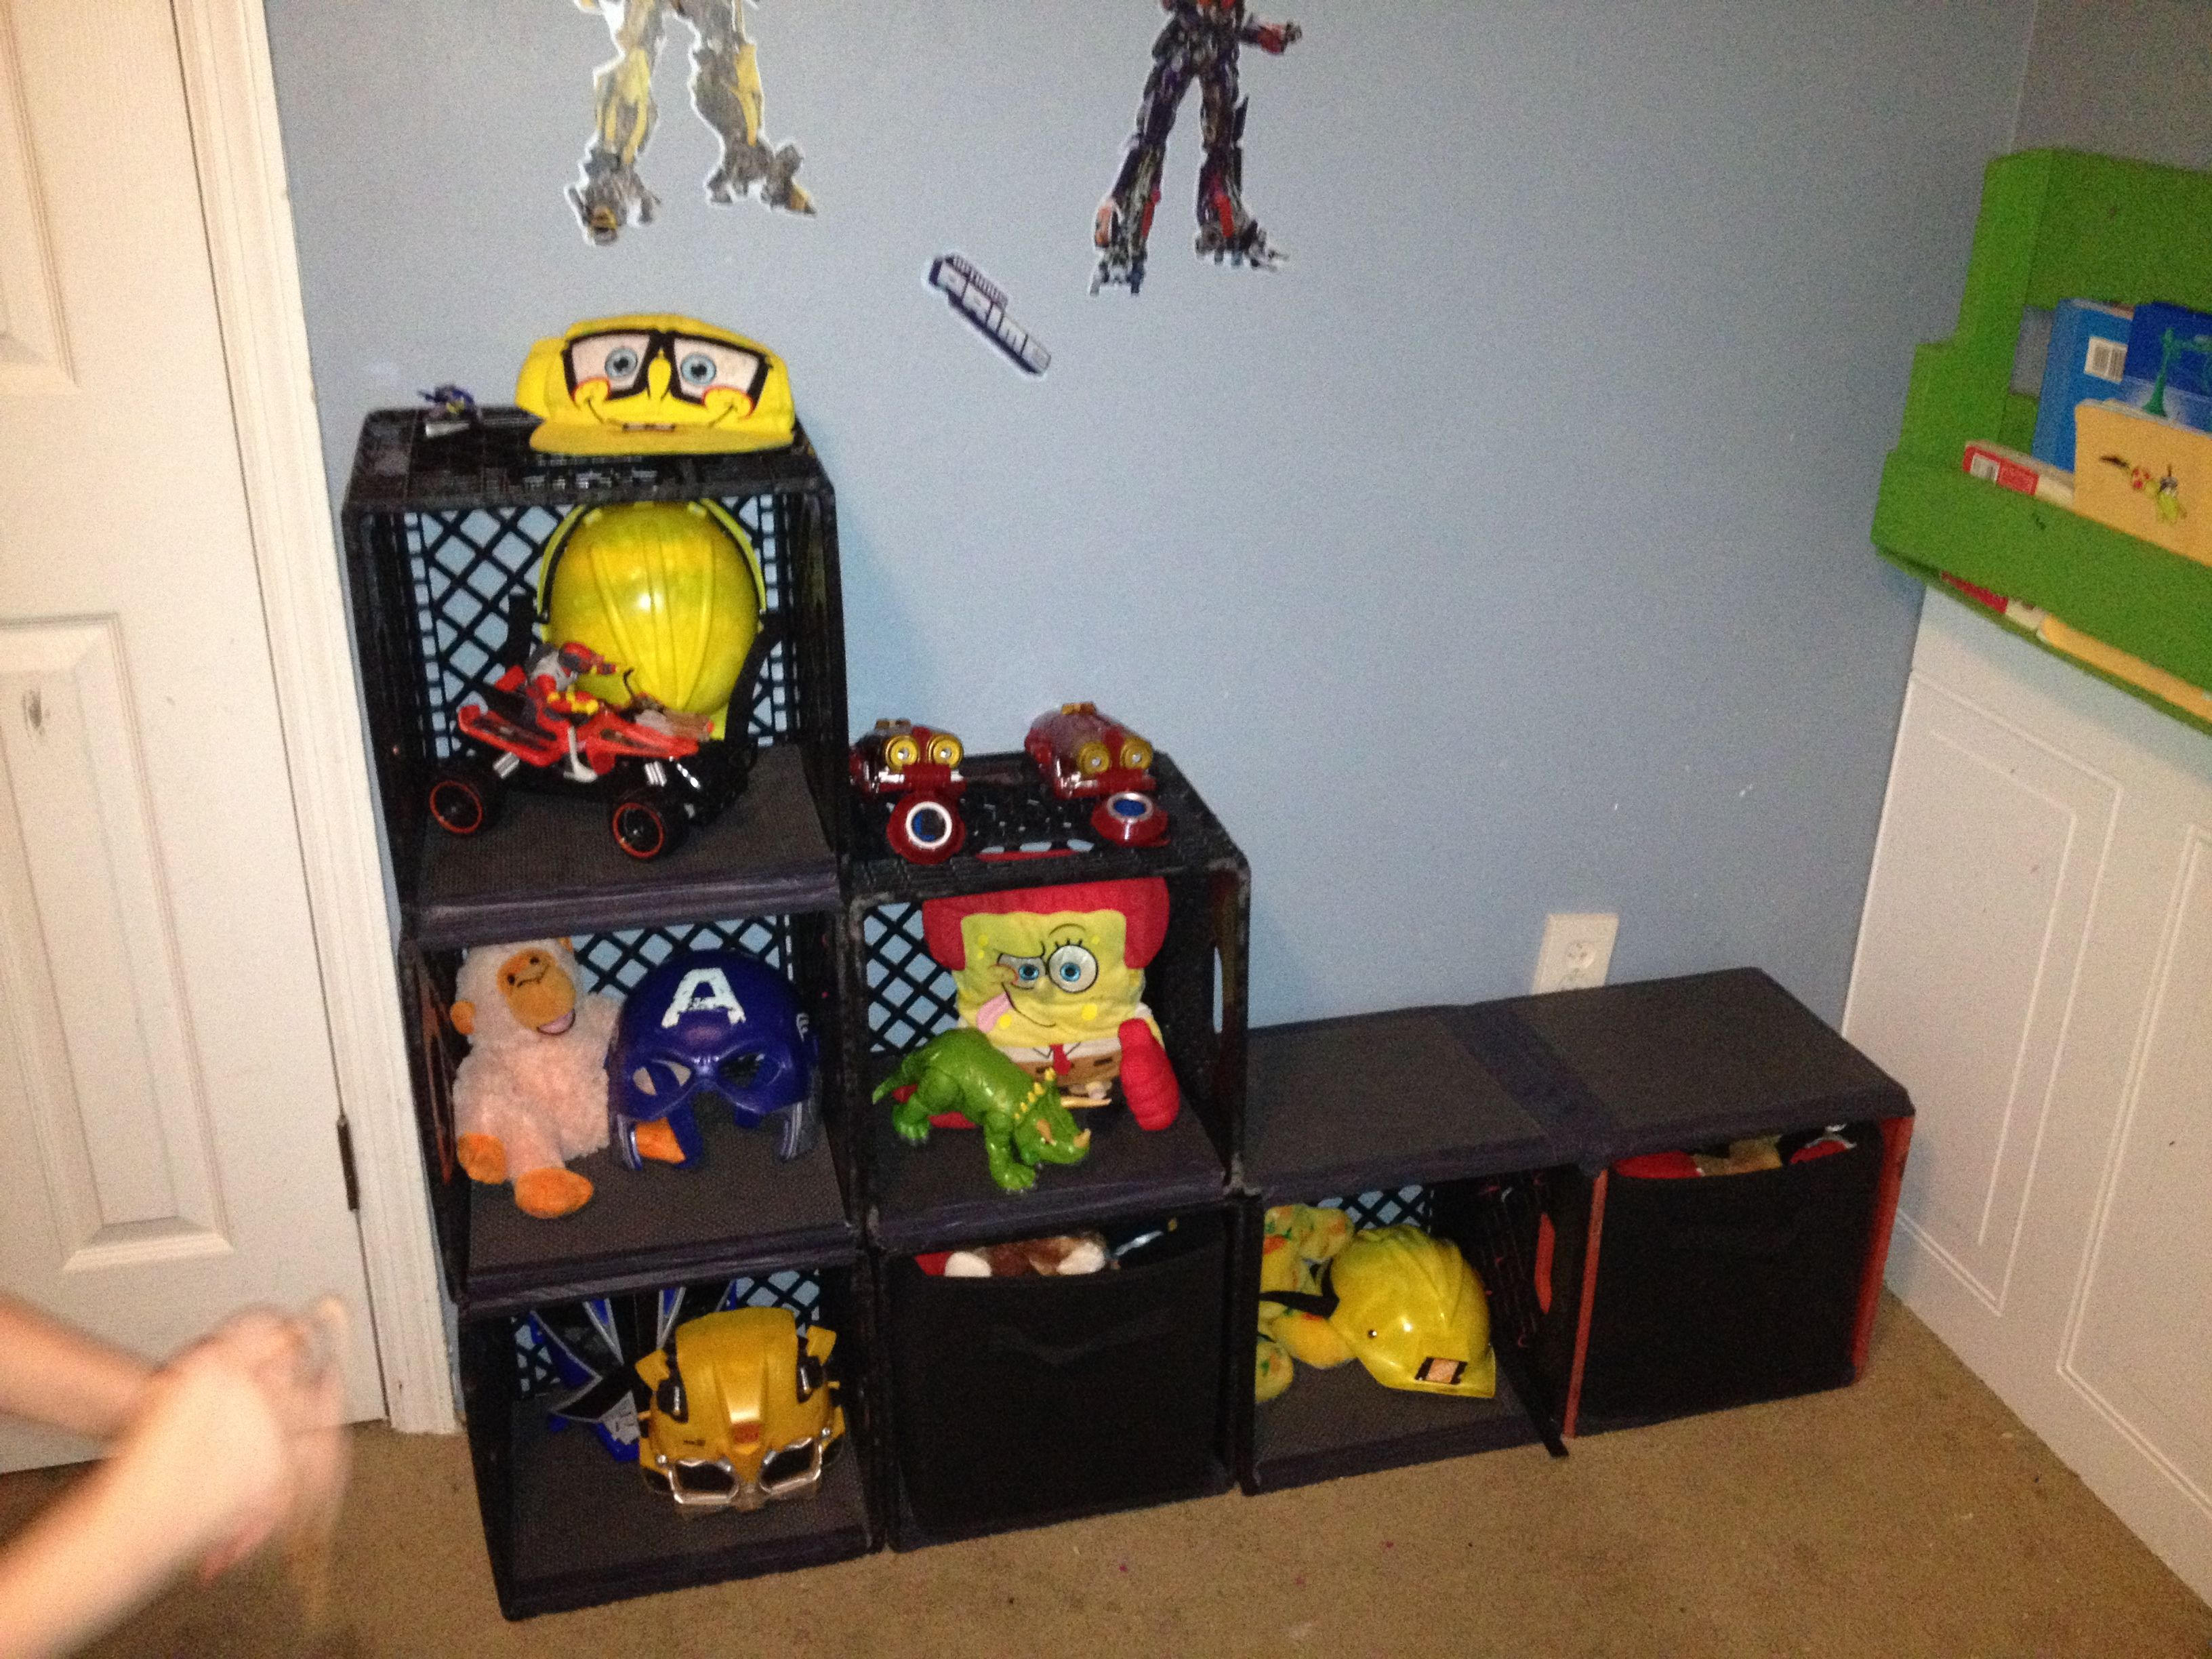 Milk Crate Toy Organizer Shelves Storage Craft